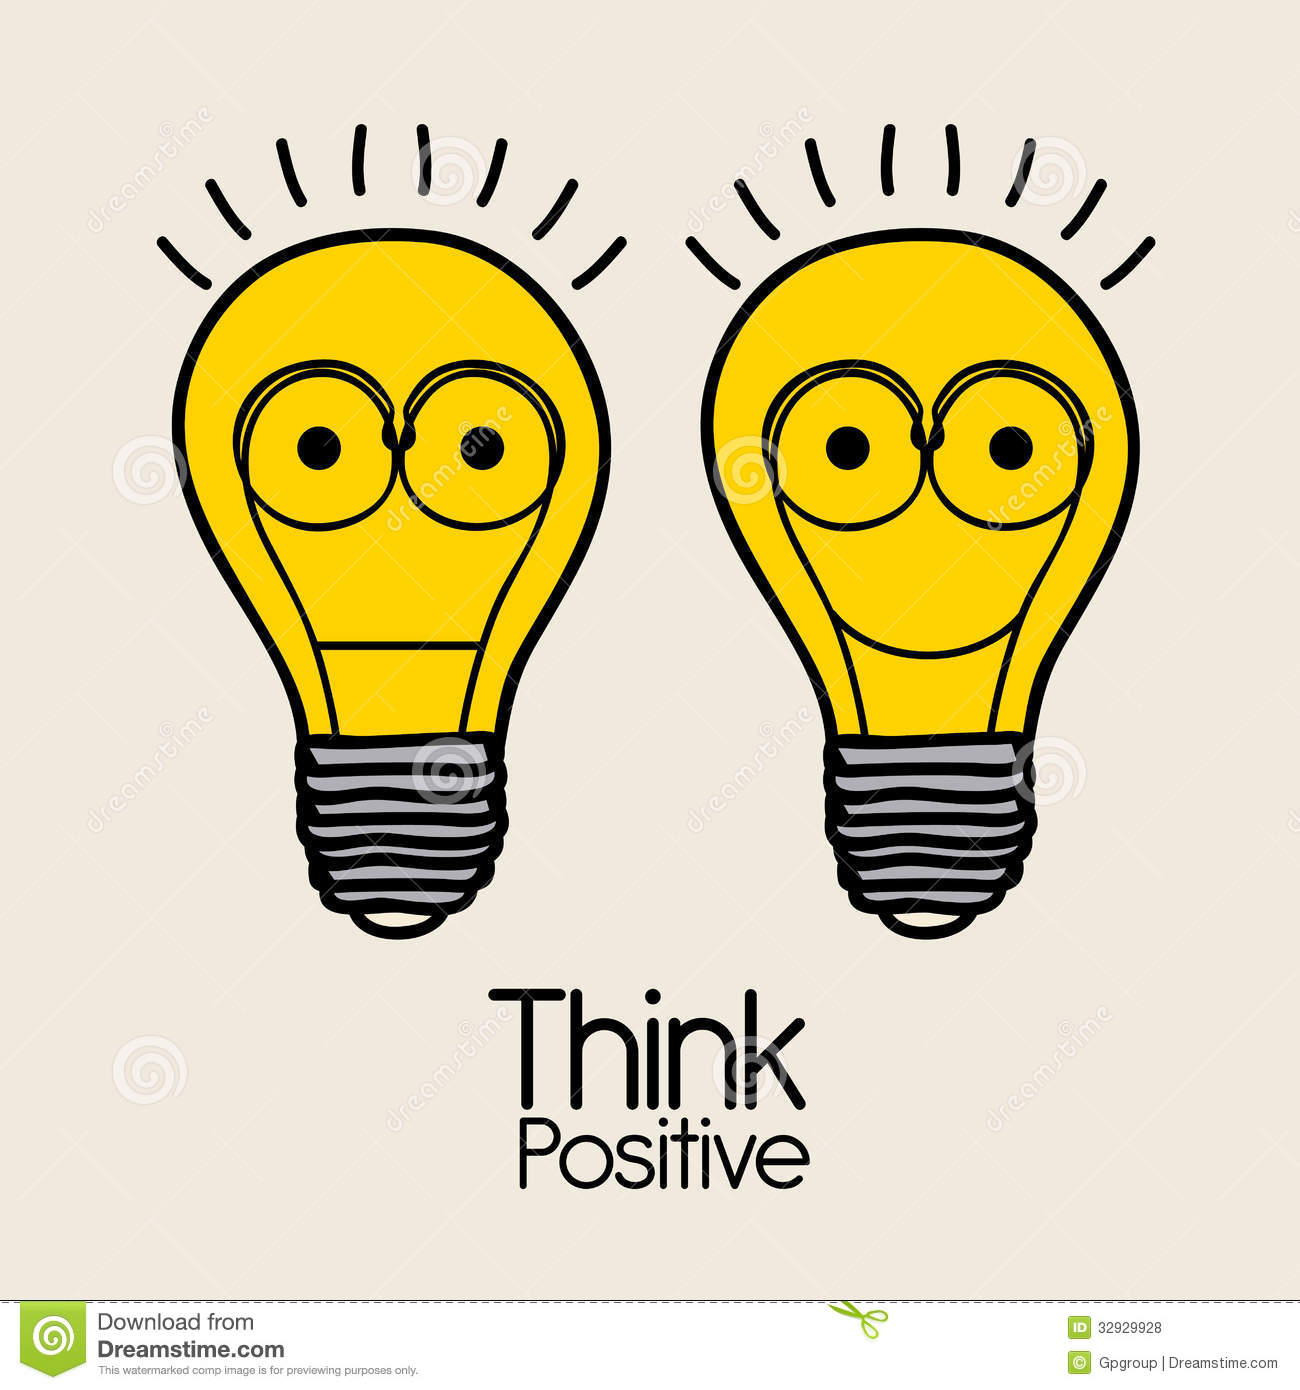 Think Positive Royalty Free Stock Photos - Image: 32929928